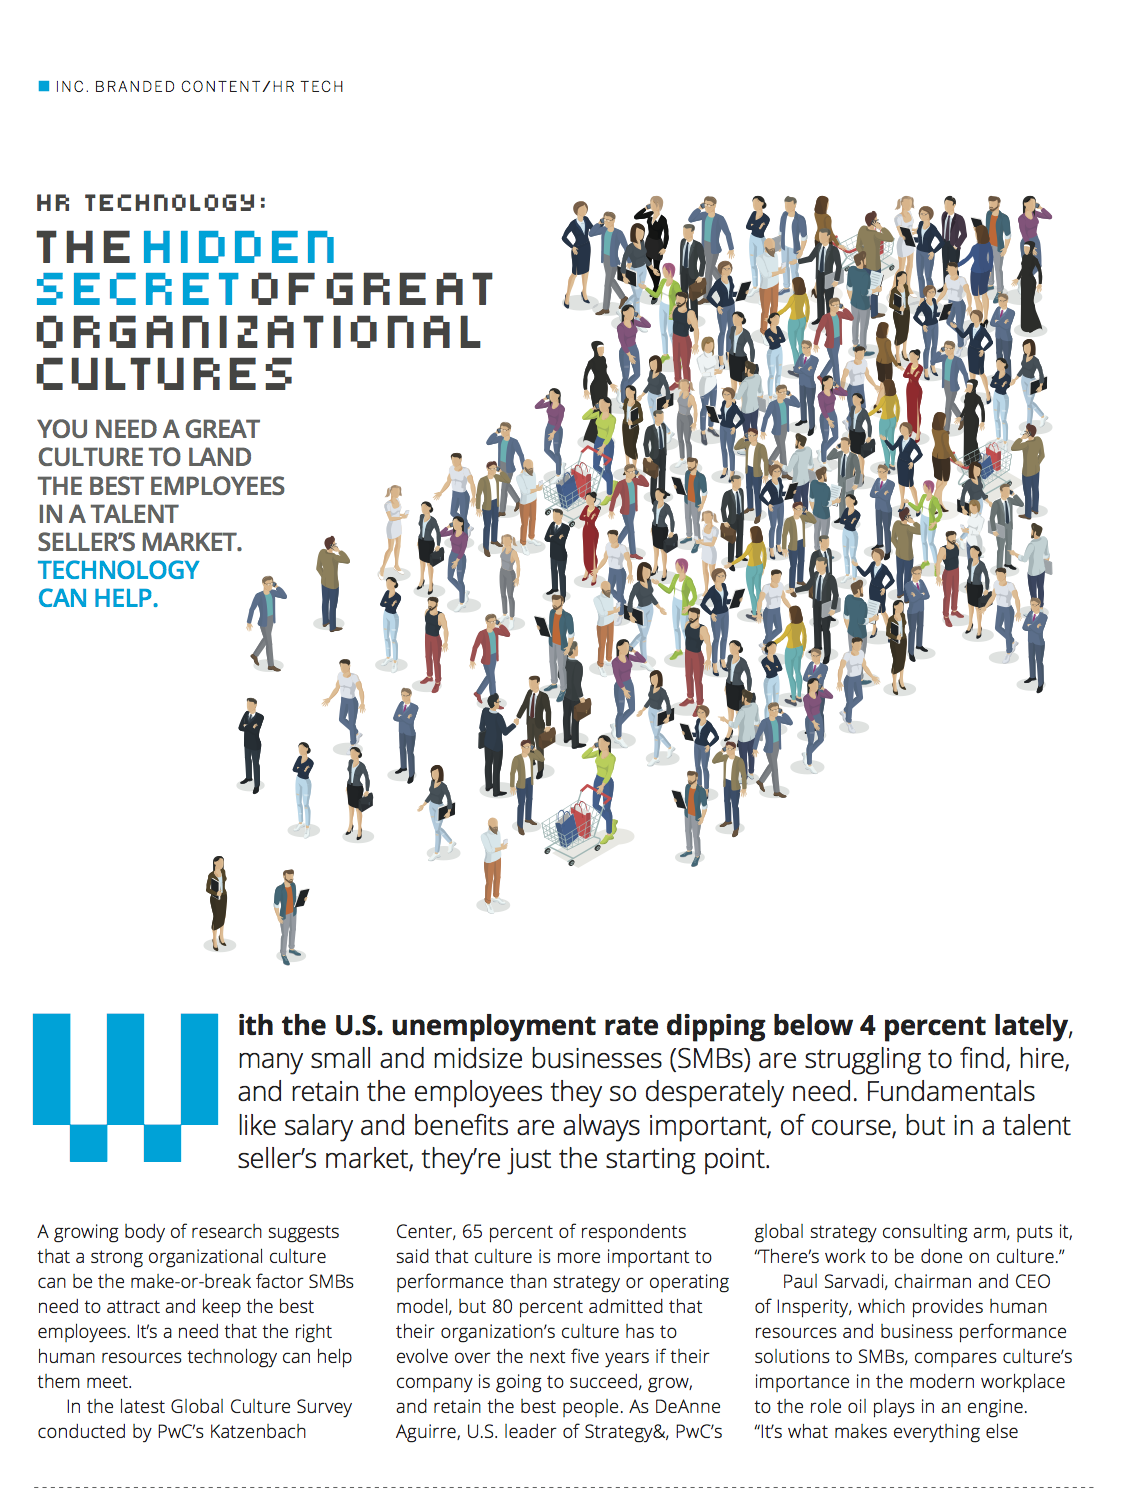 https://www.incimages.com/branded-content/HR Technology- May2019.png